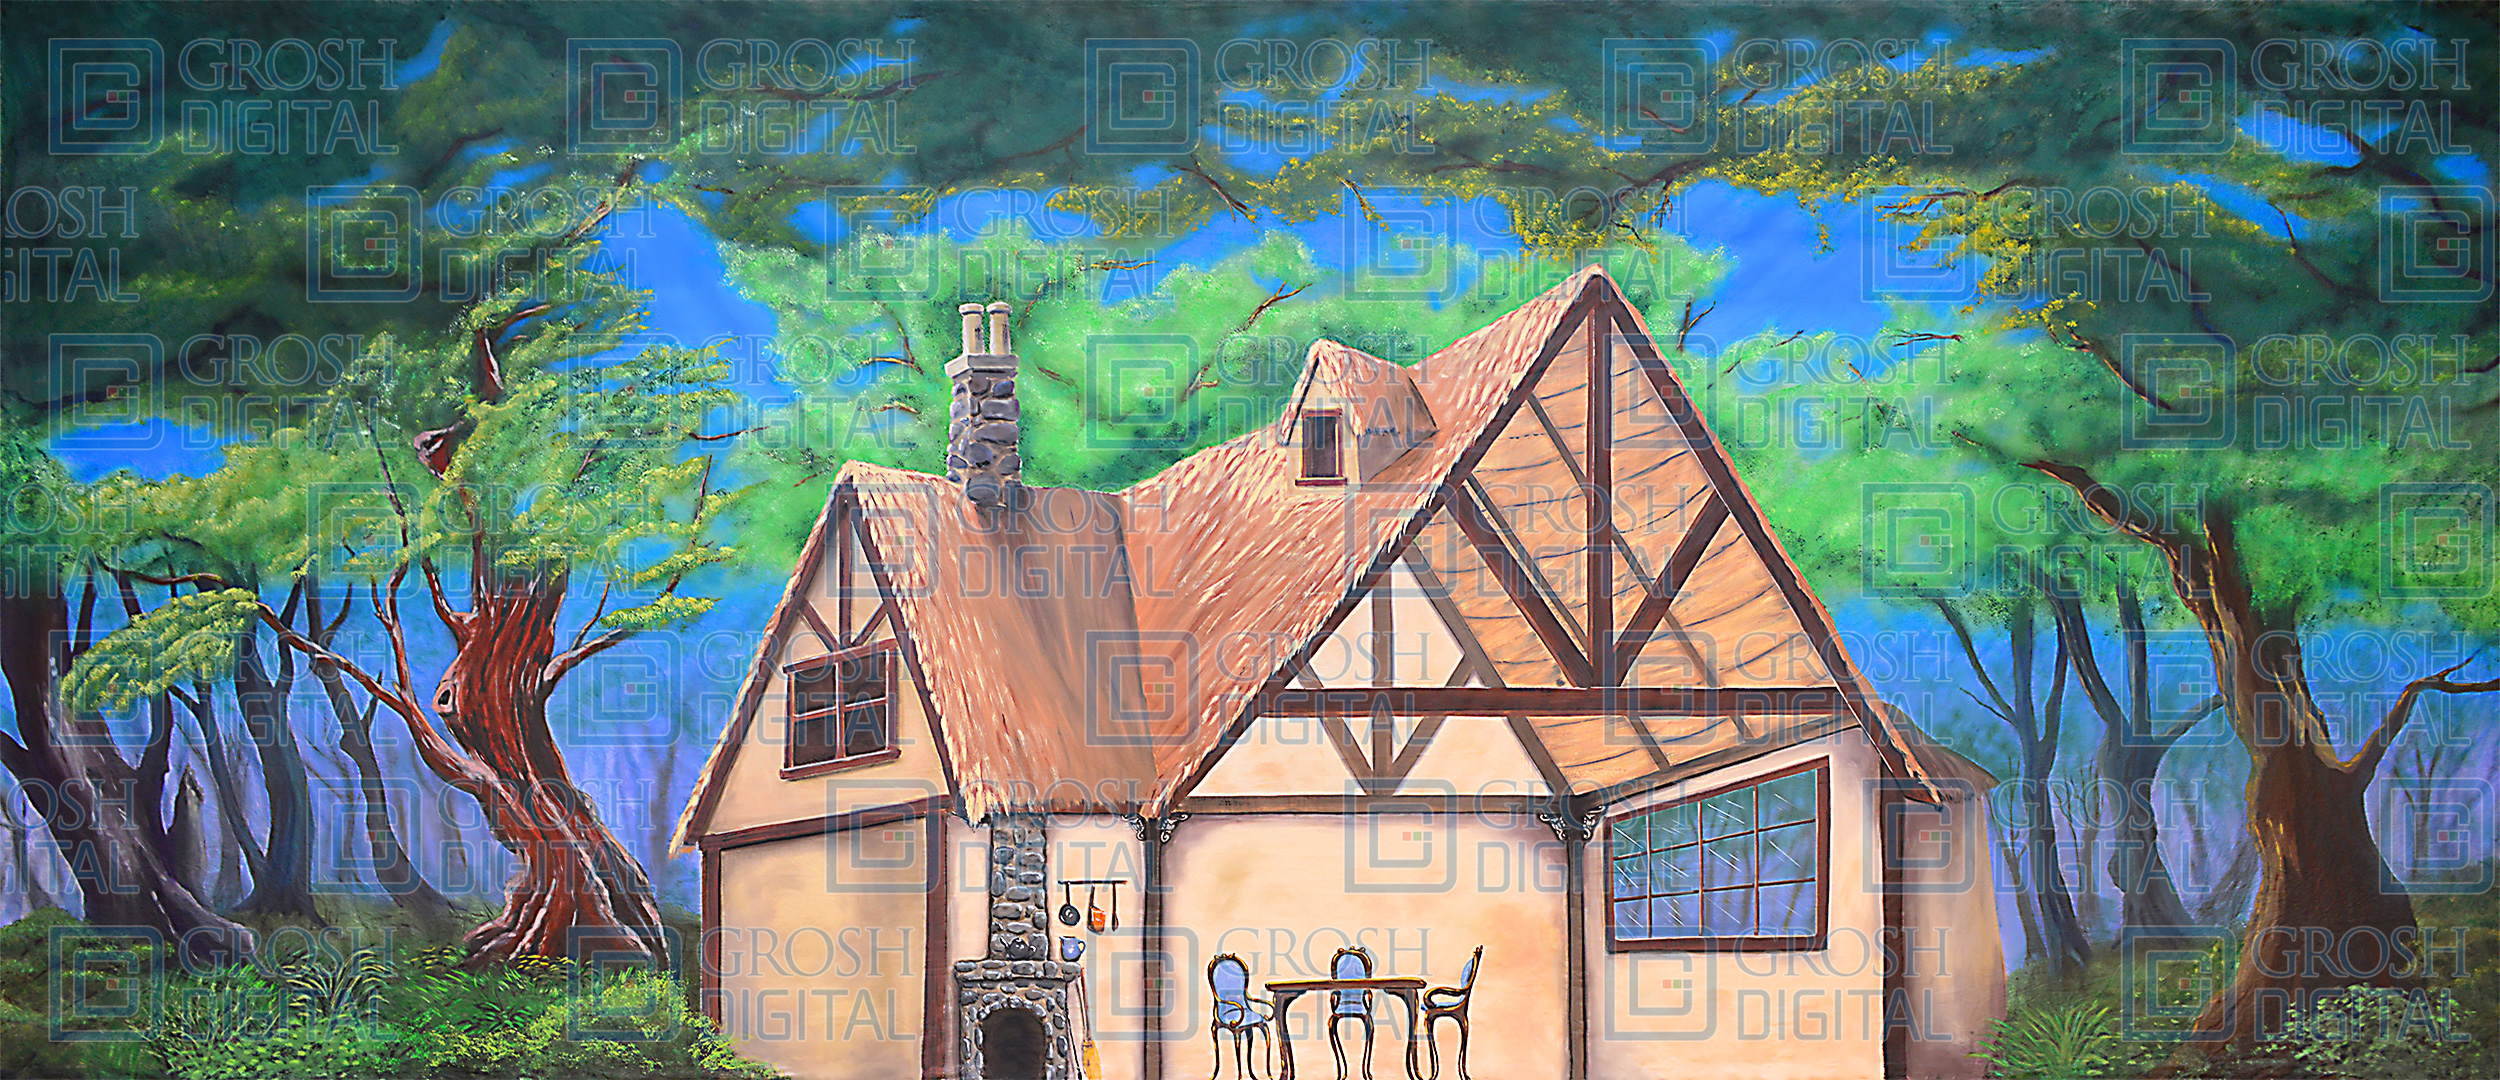 Cottage in the Woods Projected Backdrop for Alice in Wonderland, Exteriors, Forest, Interiors, Into the Woods